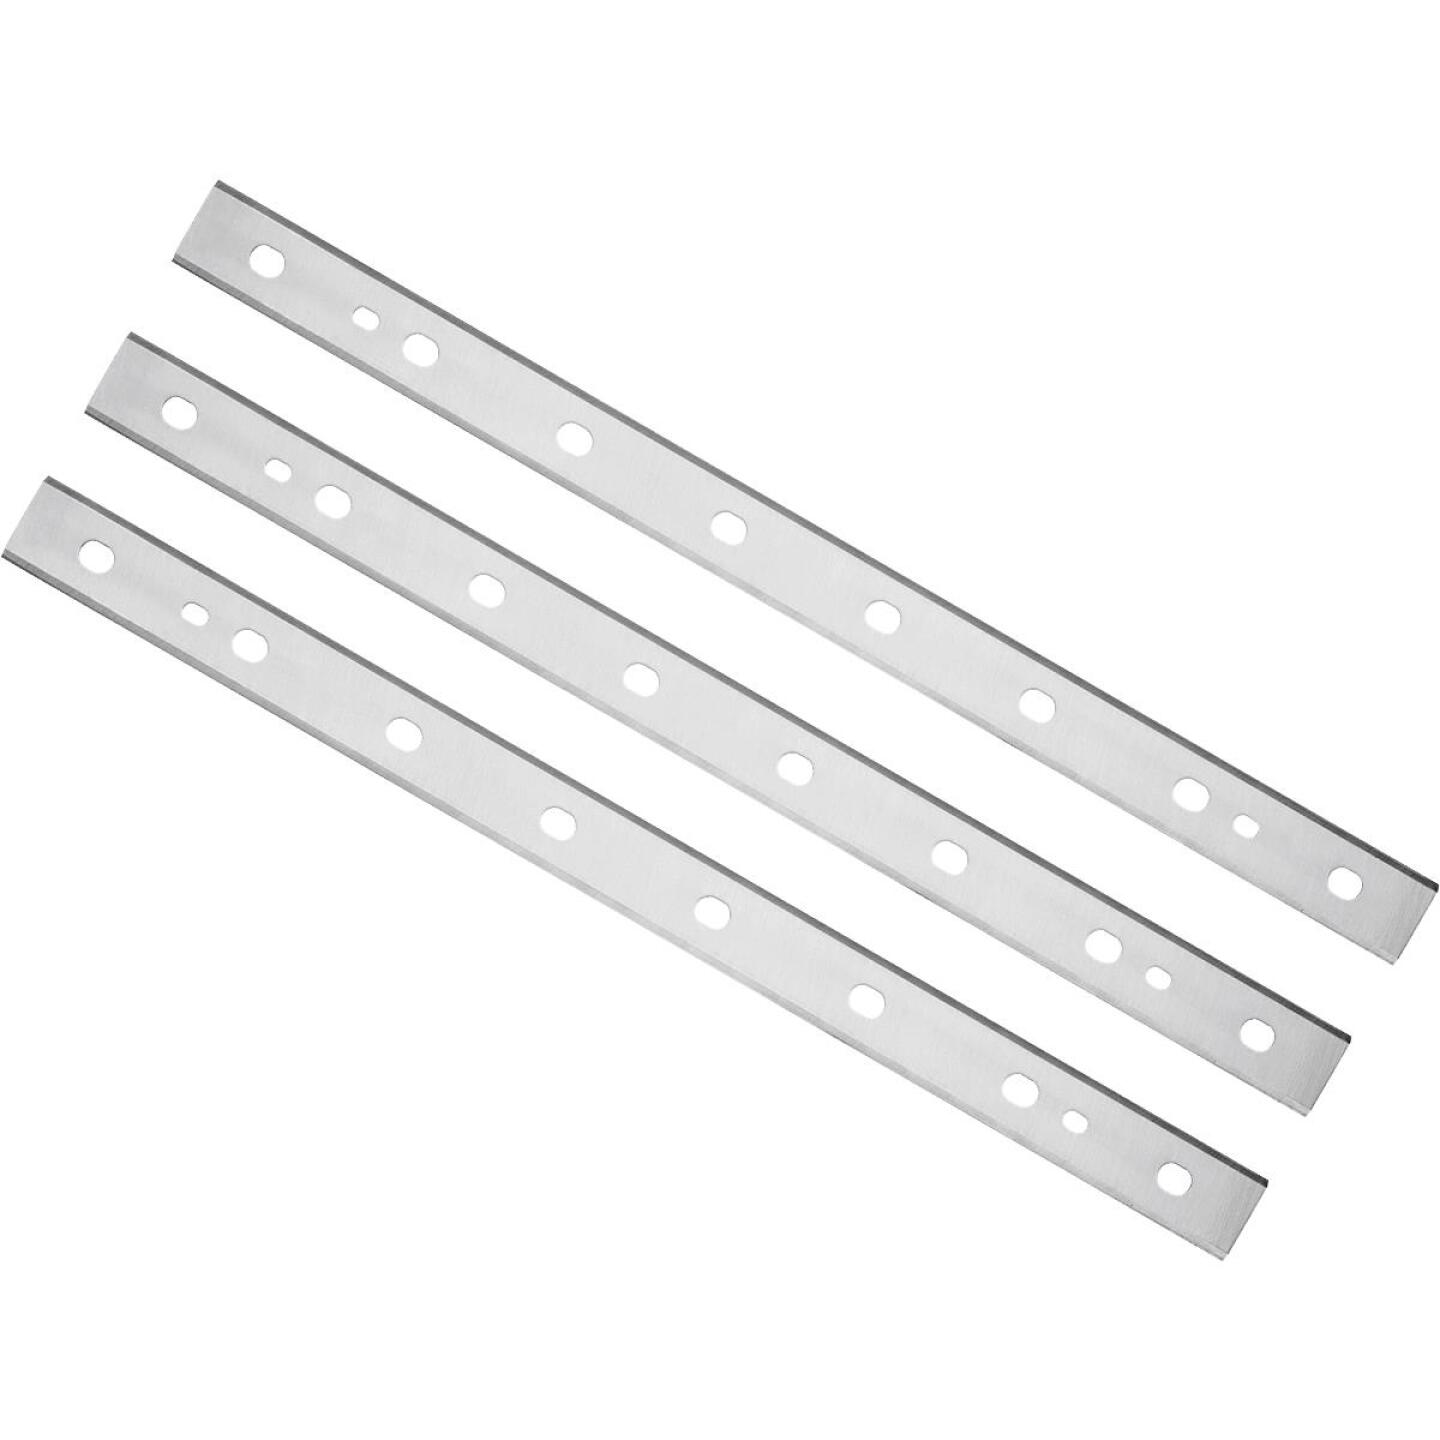 DeWalt 12-1/2 In. High Speed Steel Planer Blade (3-Pack) Image 2